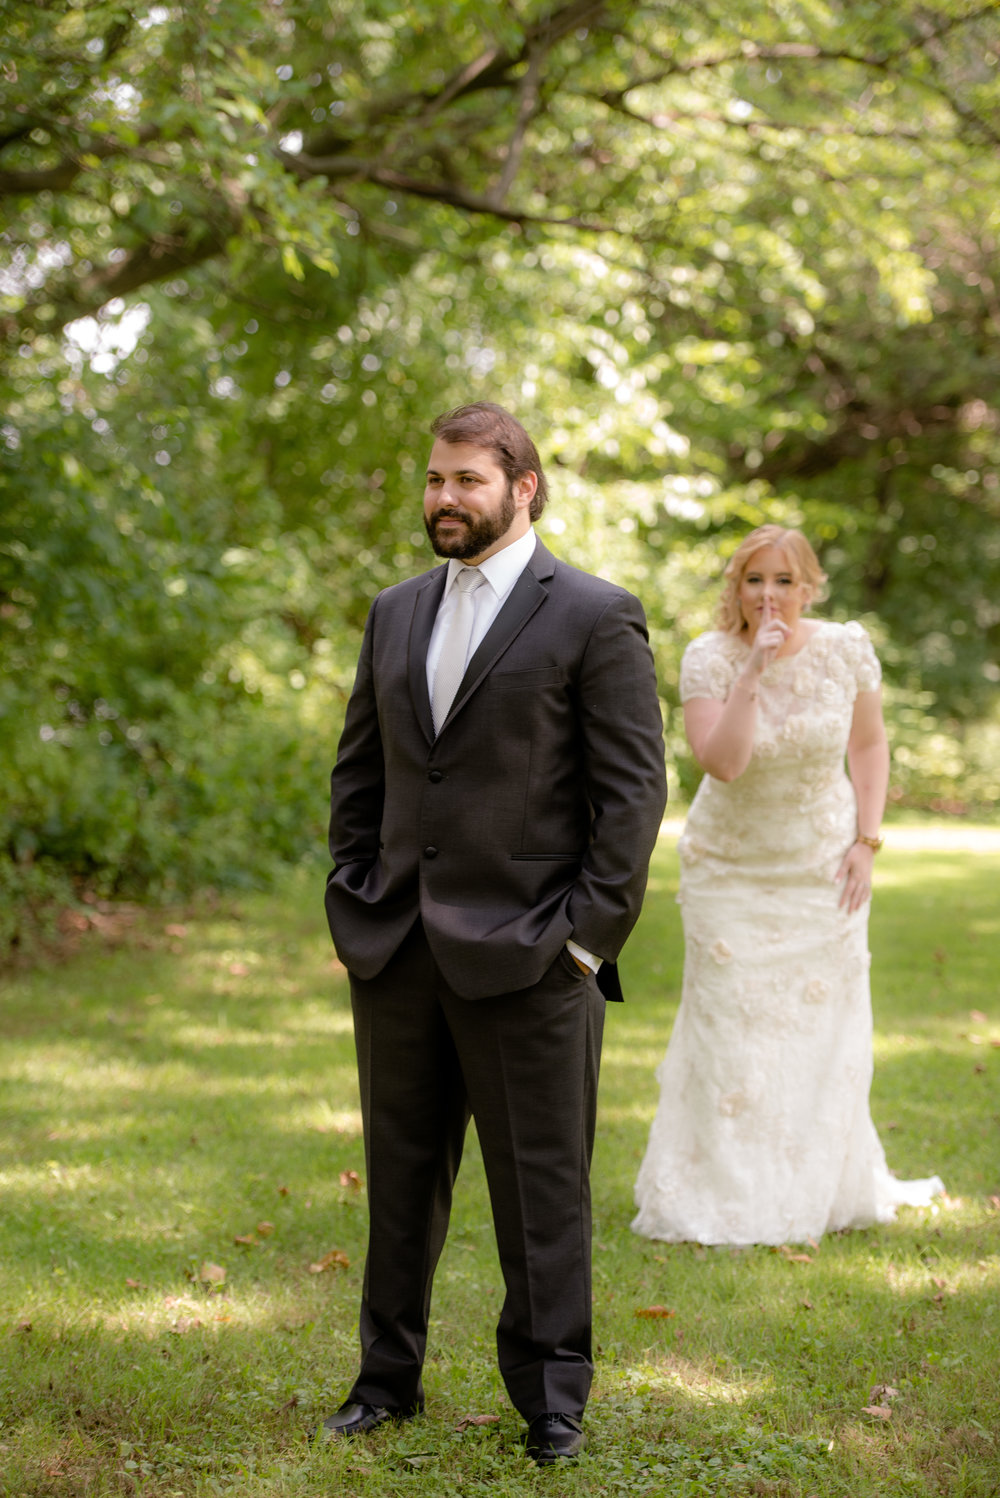 JD Photography, LLC (26 of 404).jpg